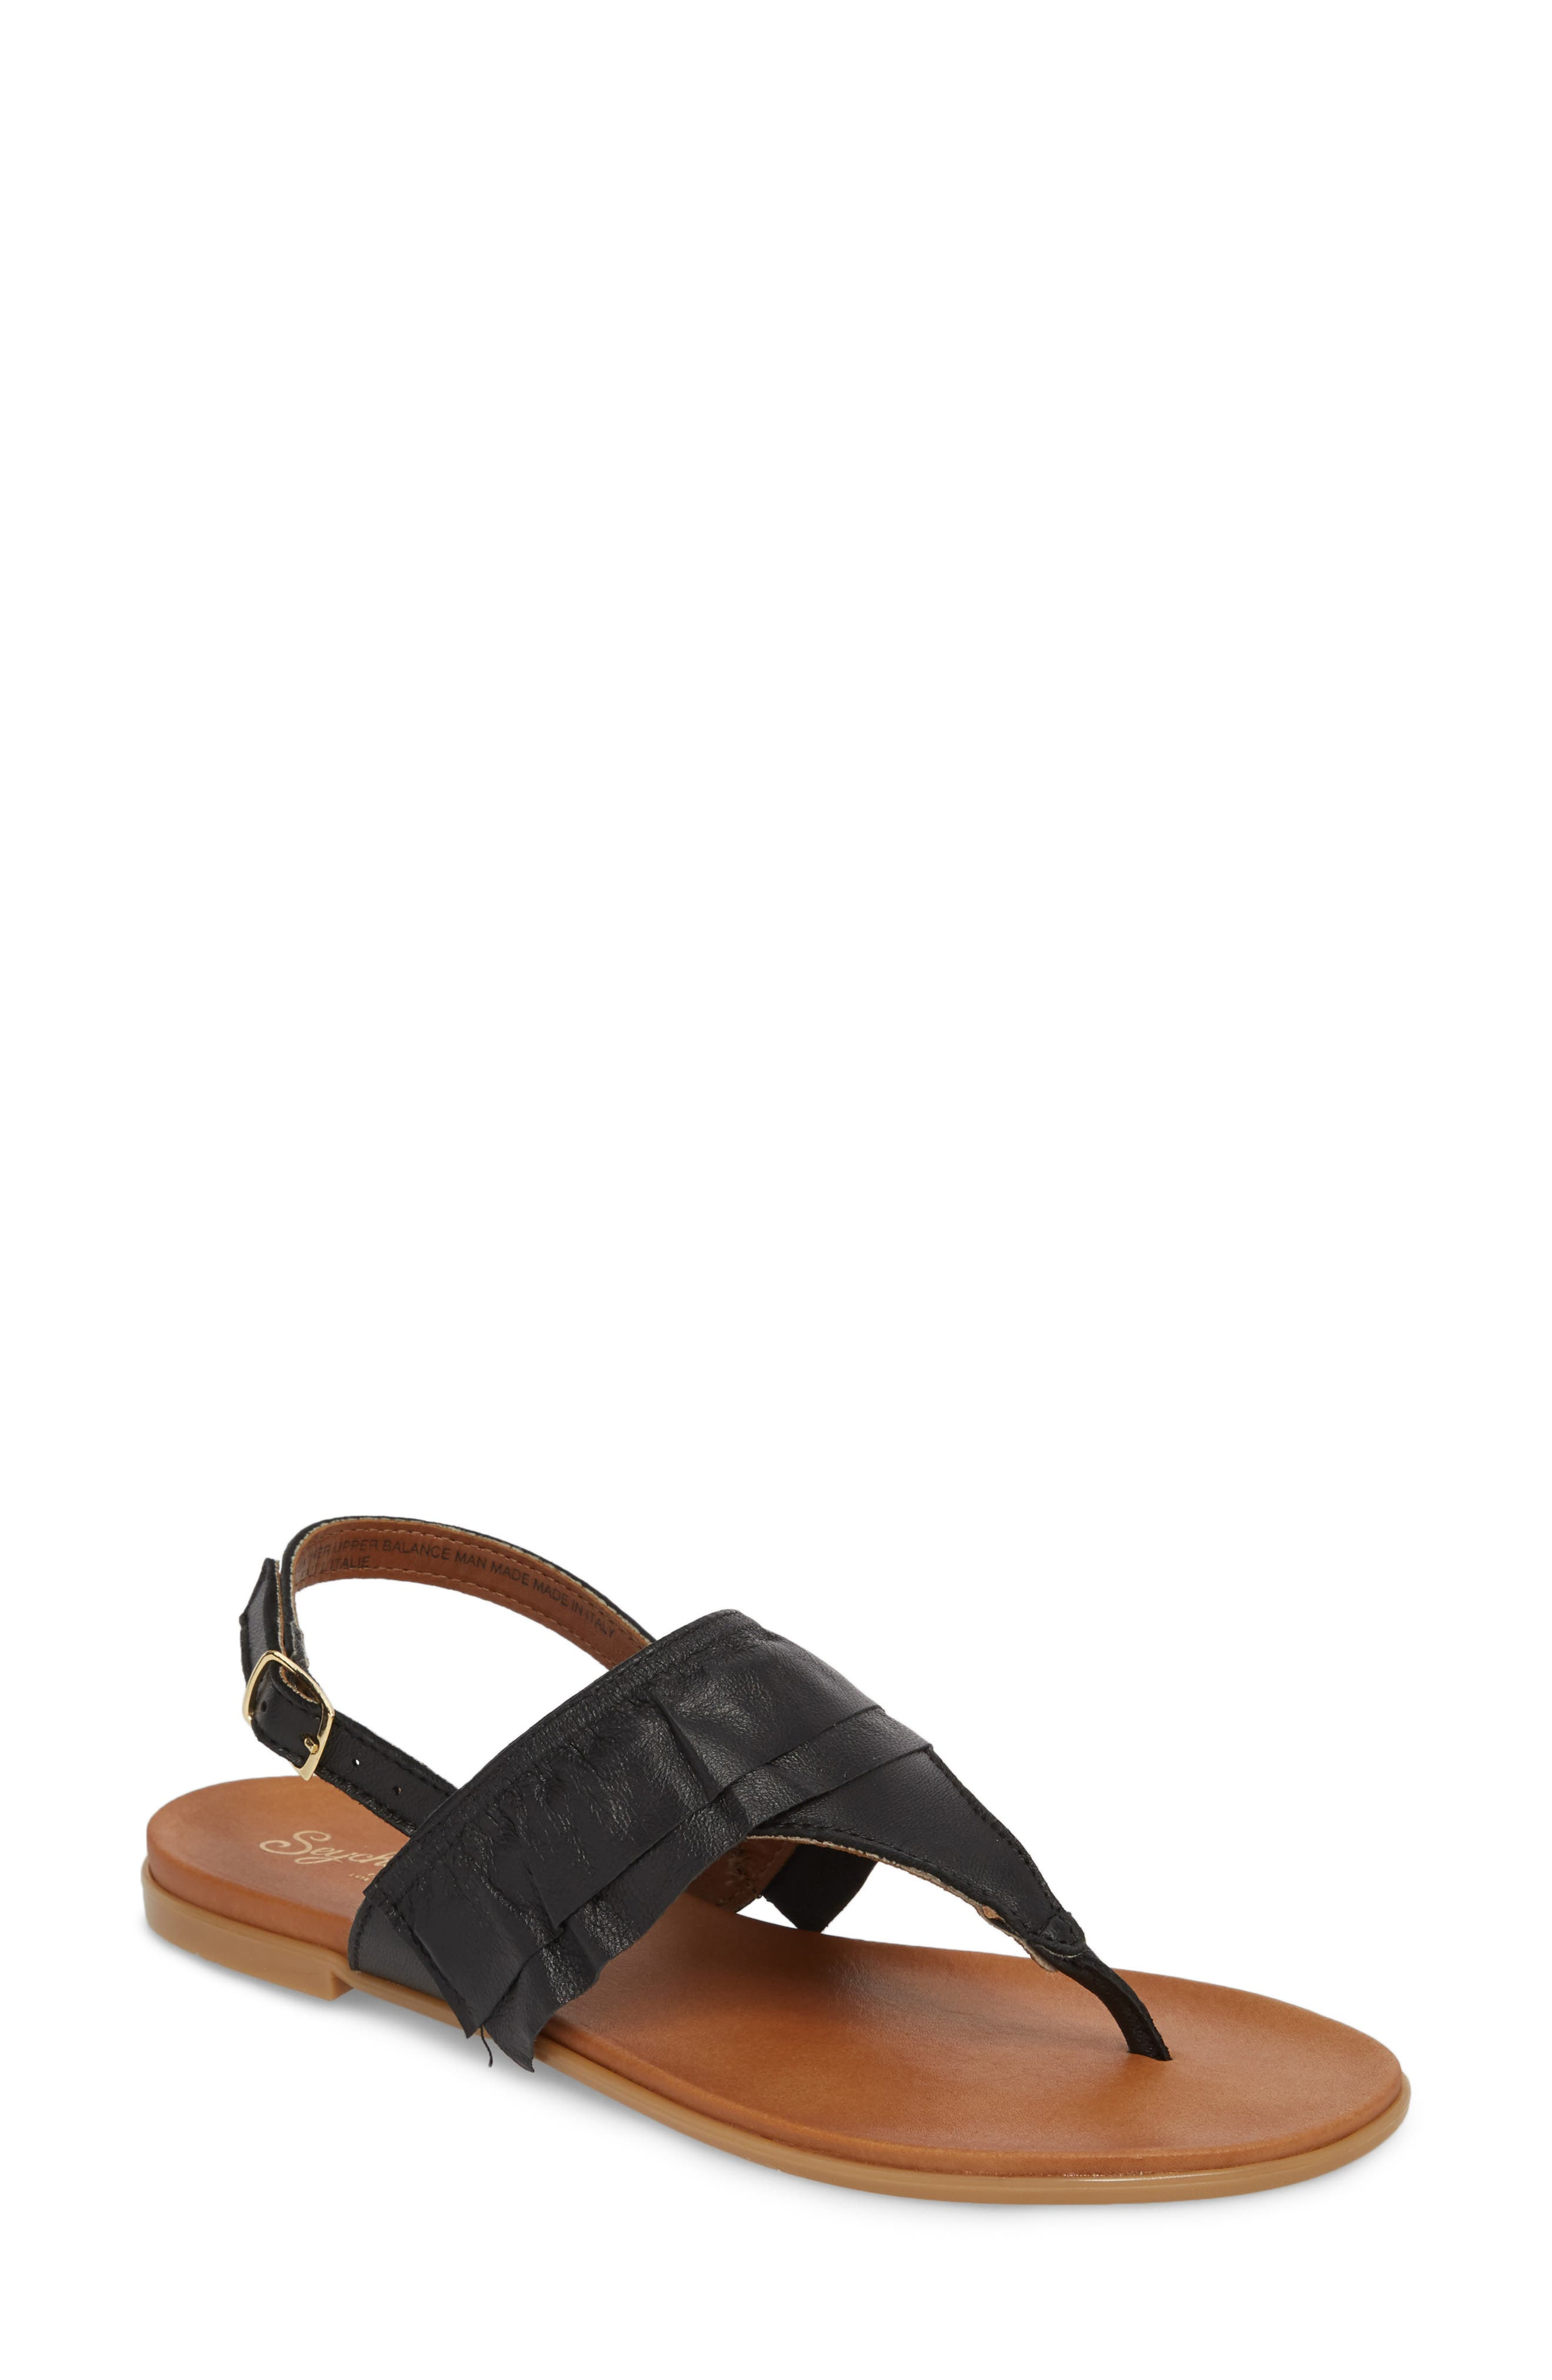 SECLUSION RUFFLE SANDAL